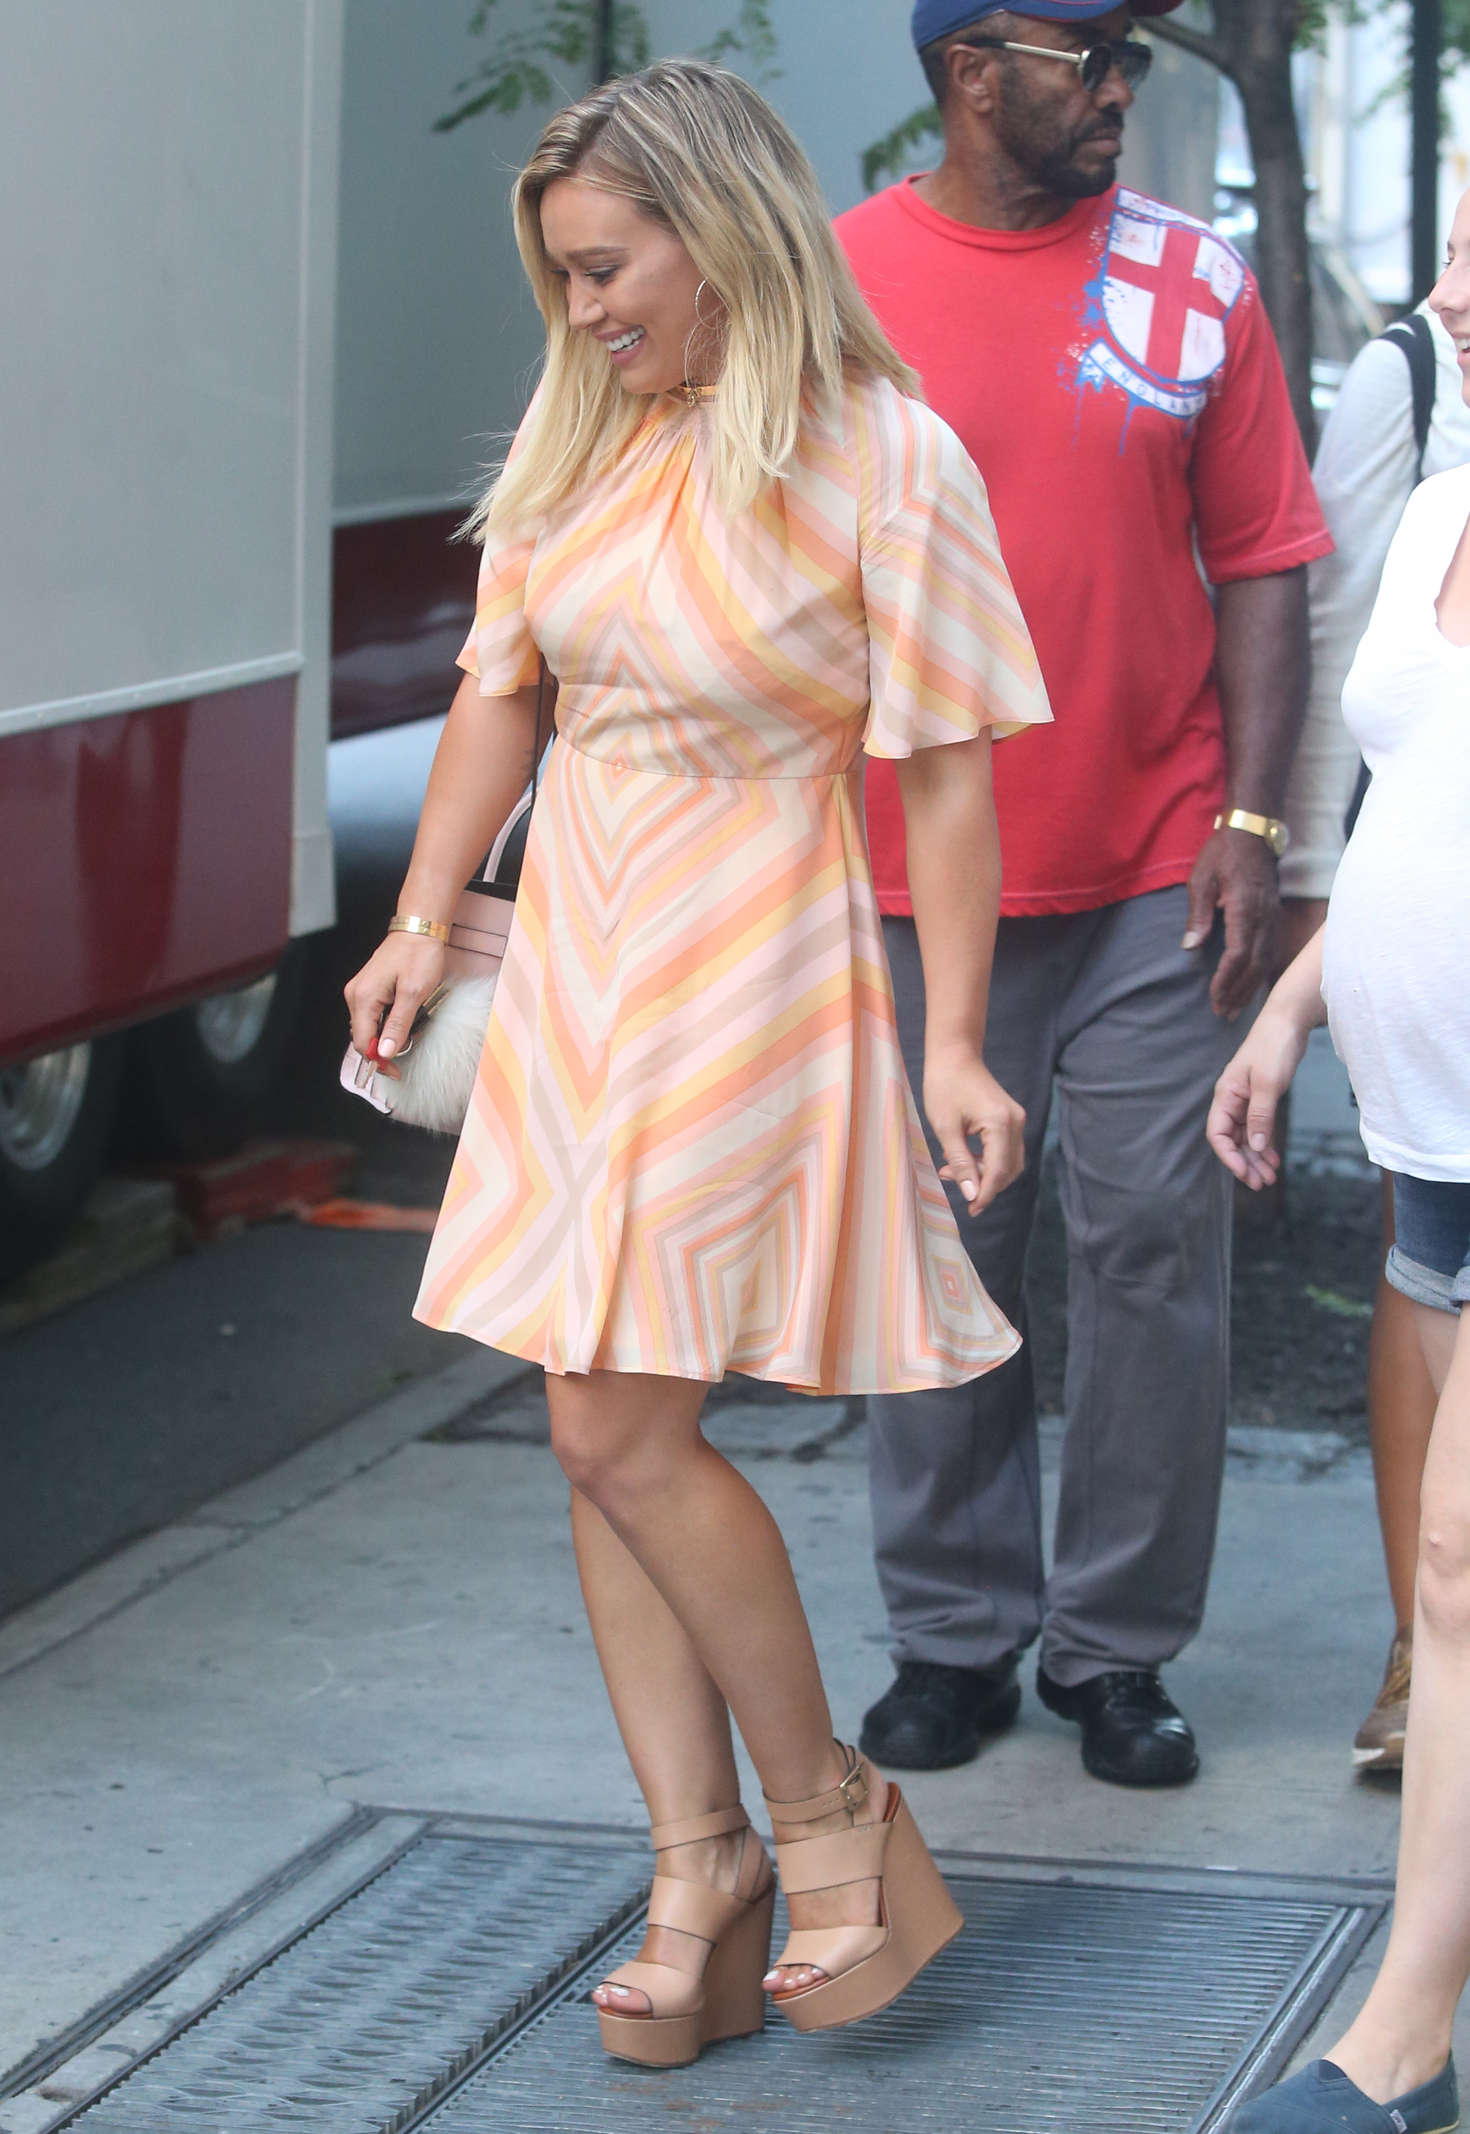 Hilary Duff 2016 : Hilary Duff in Mini Dress on the set of Younger -07